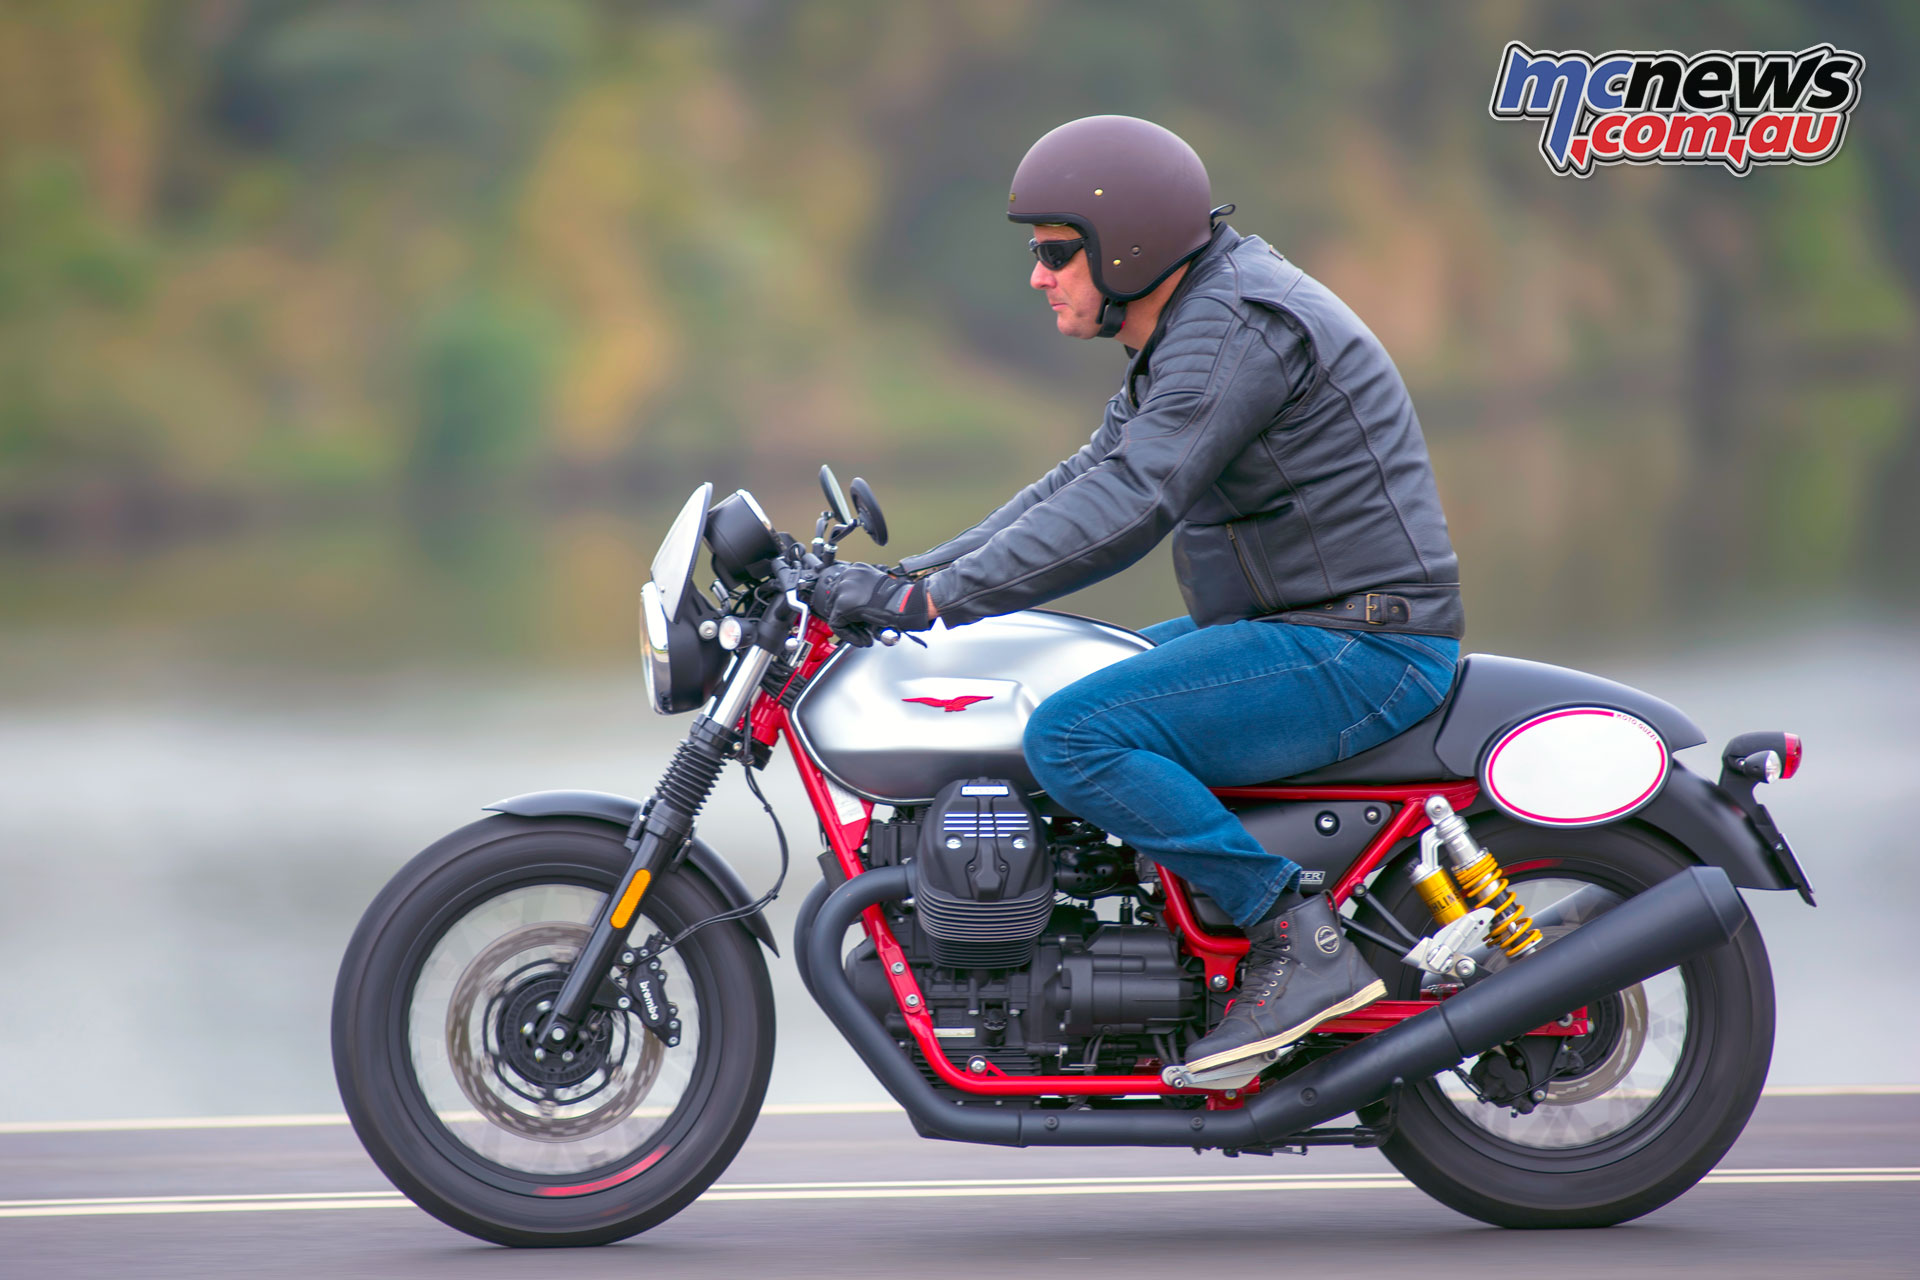 Moto Guzzi V7 III Racer Review | Motorcycle Tests | MCNews